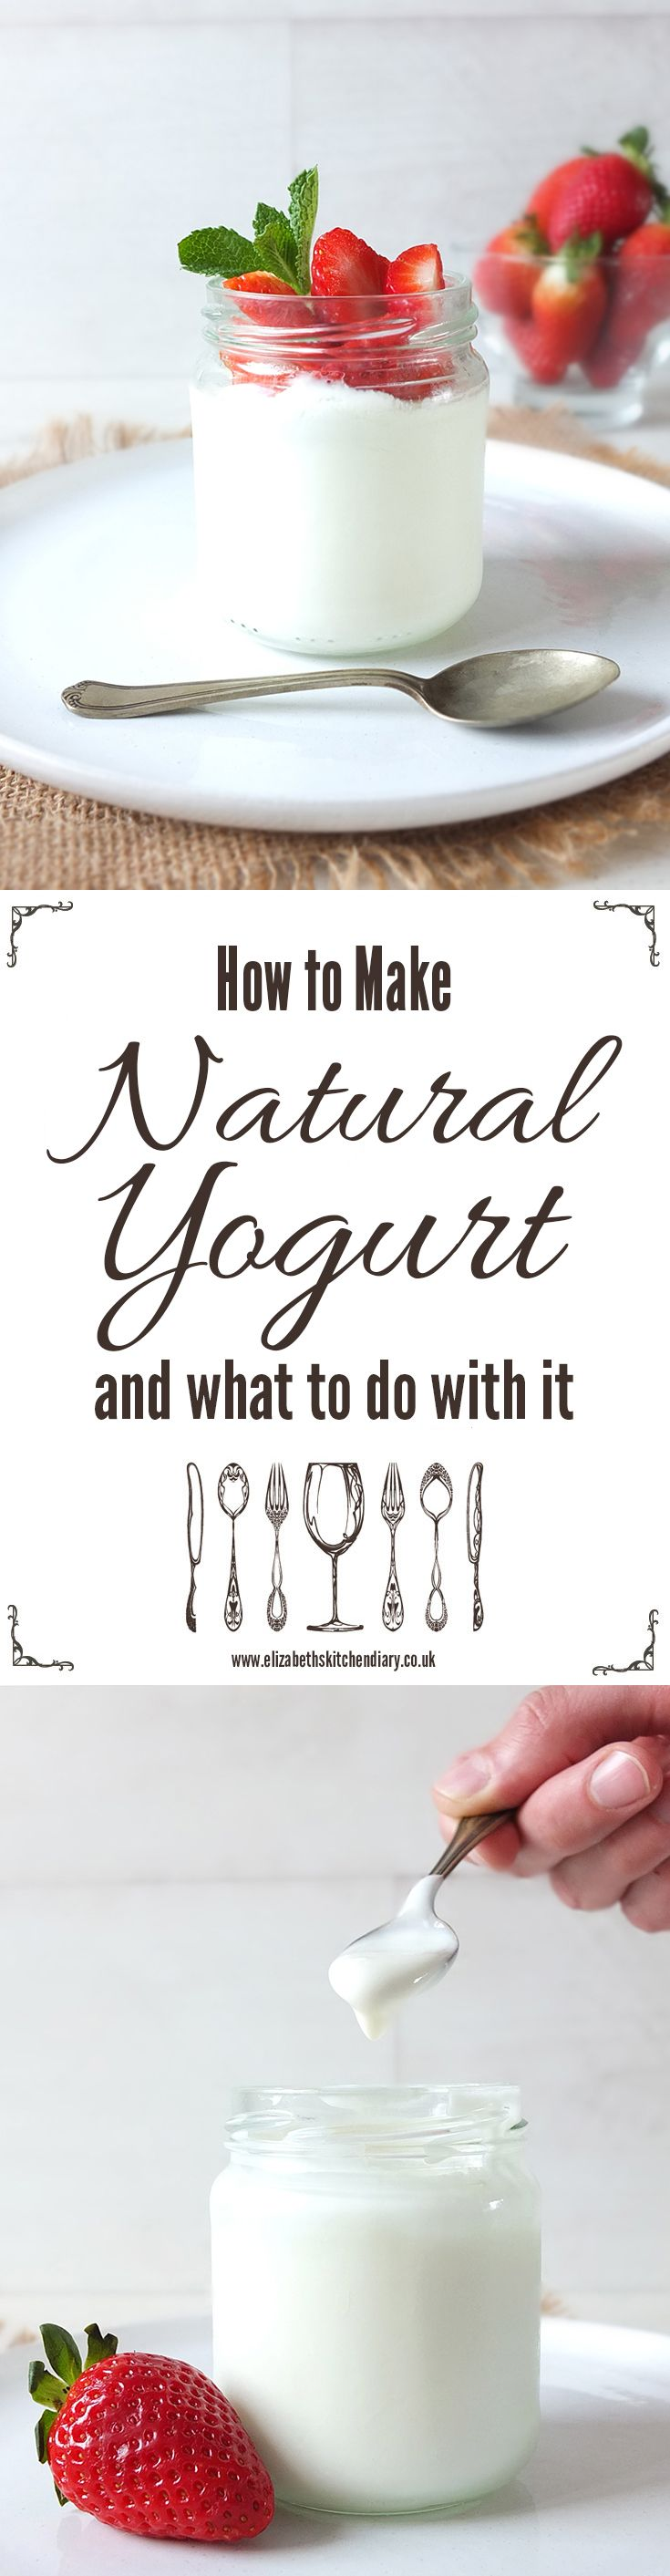 Home made natural yogurt is so simple to make! Find out how over on Elizabeth's Kitchen Diary, and there are loads of recipe suggestions as to what to do with it afterwards too.